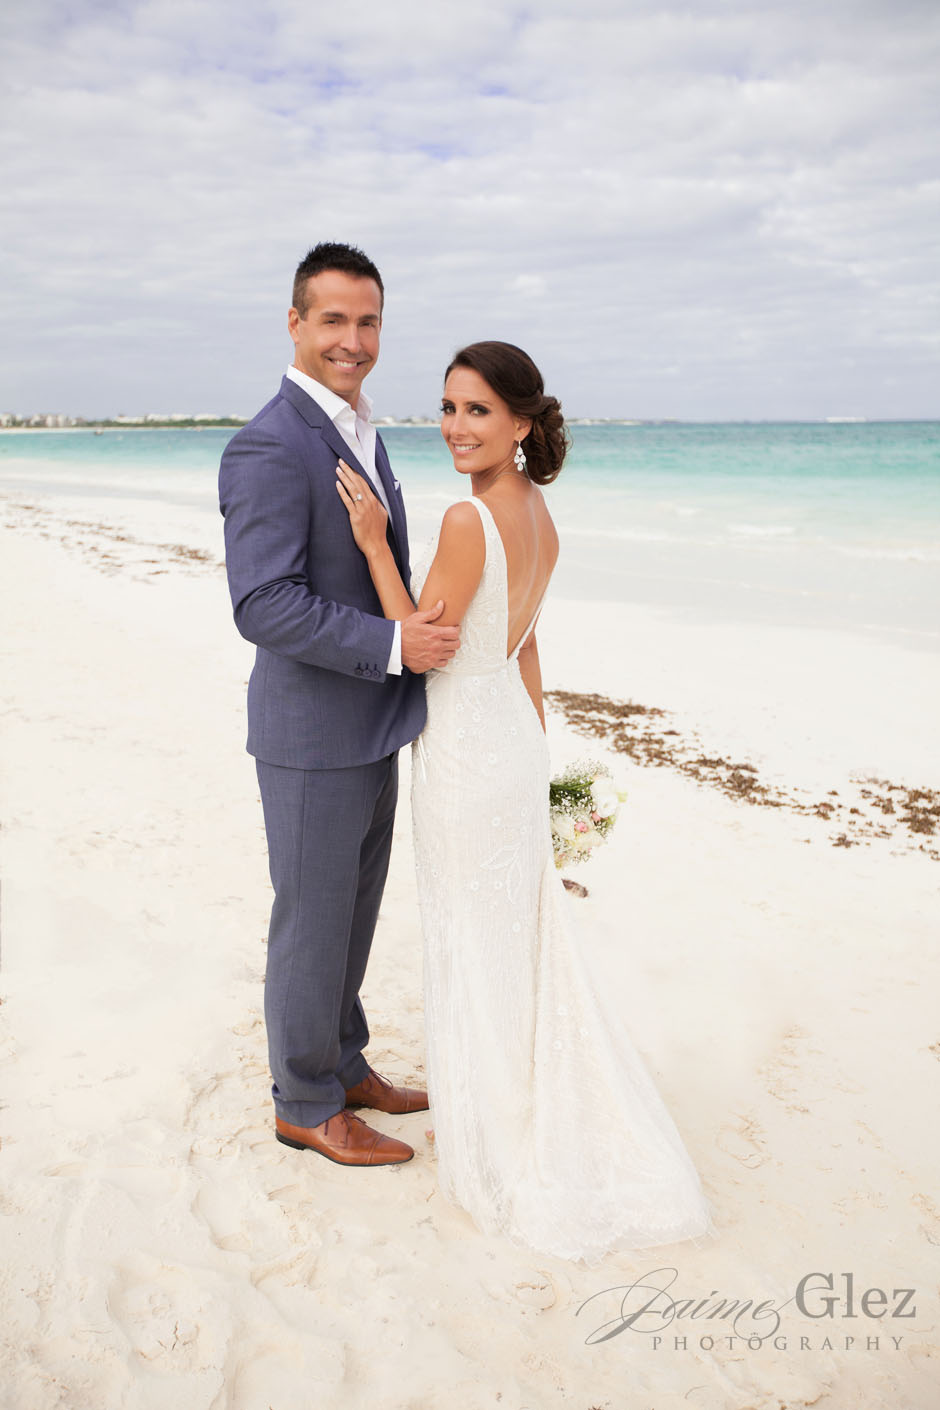 Riviera Maya is always a beautiful destination for a wedding photo session. What do you think?